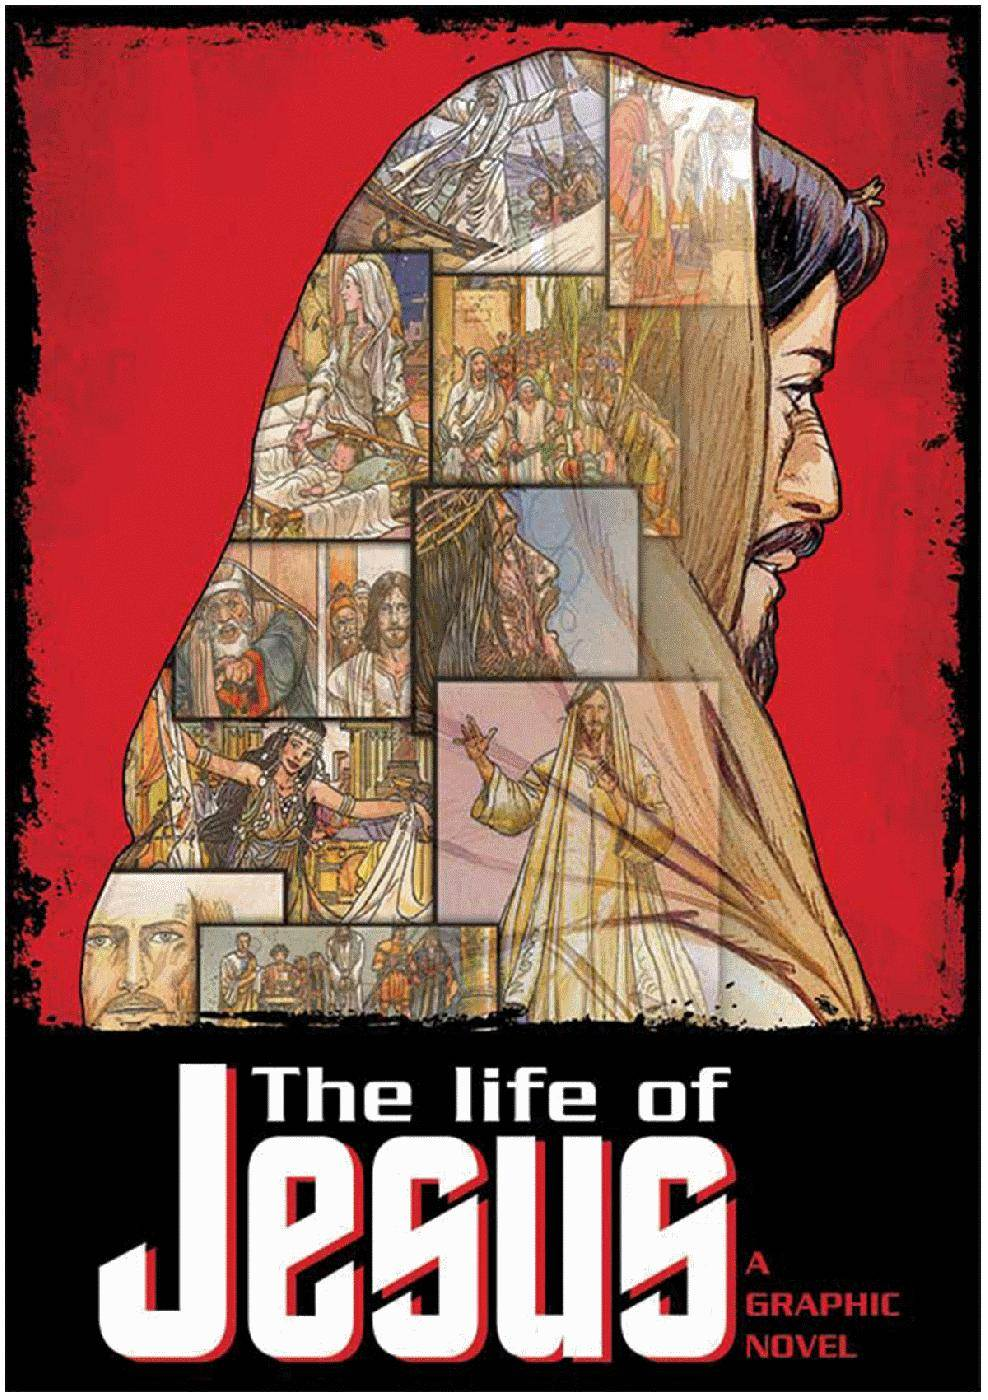 A Life of Jesus: A Graphic Novel